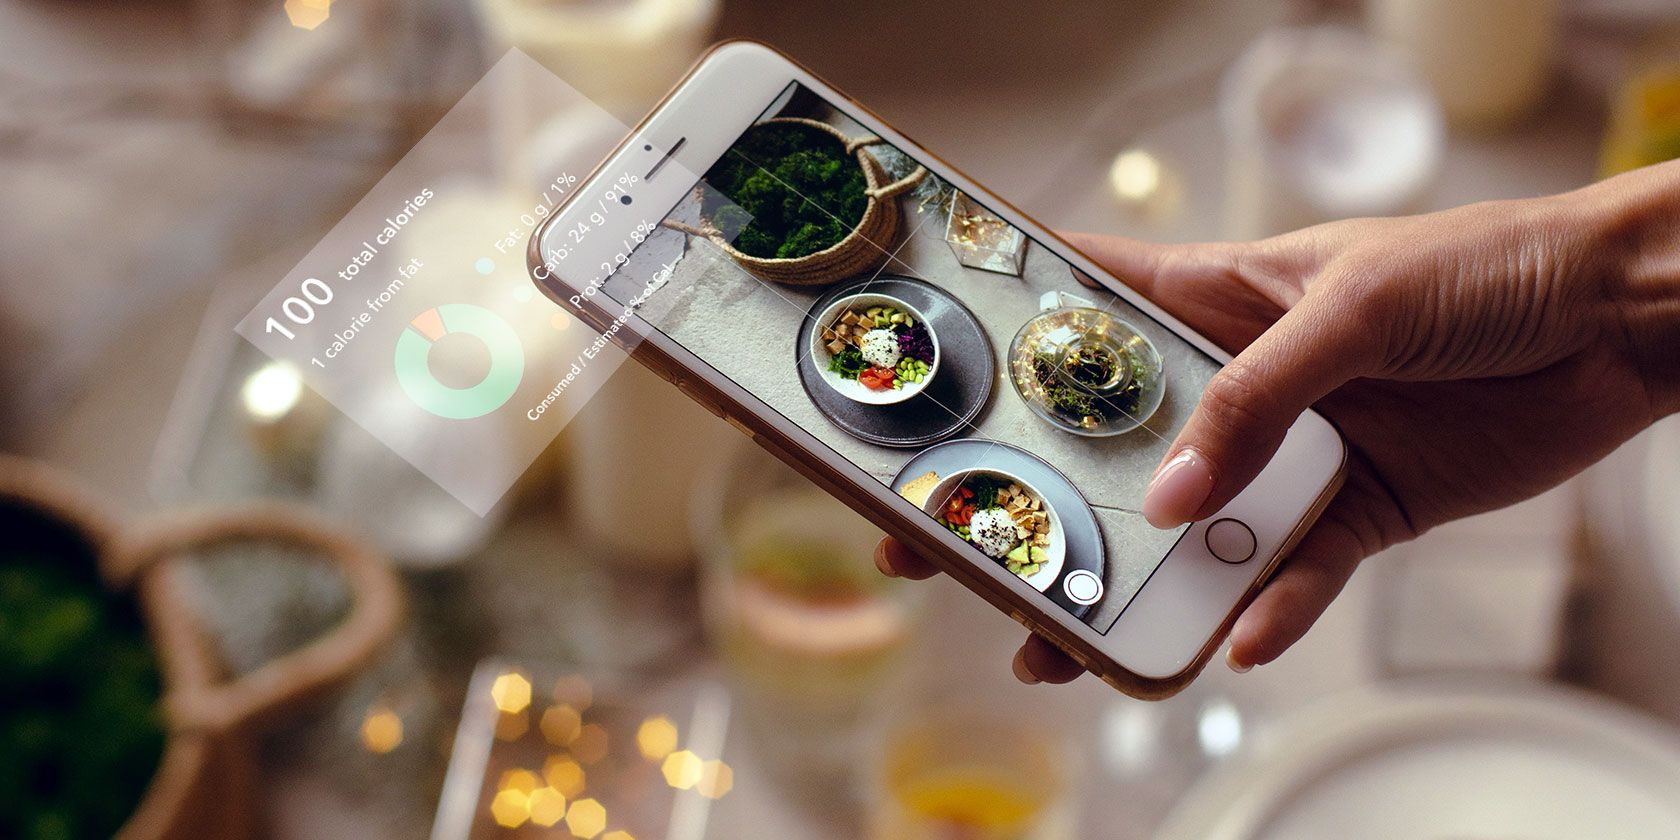 The 5 Best Apps to Count Calories on Android and iPhone